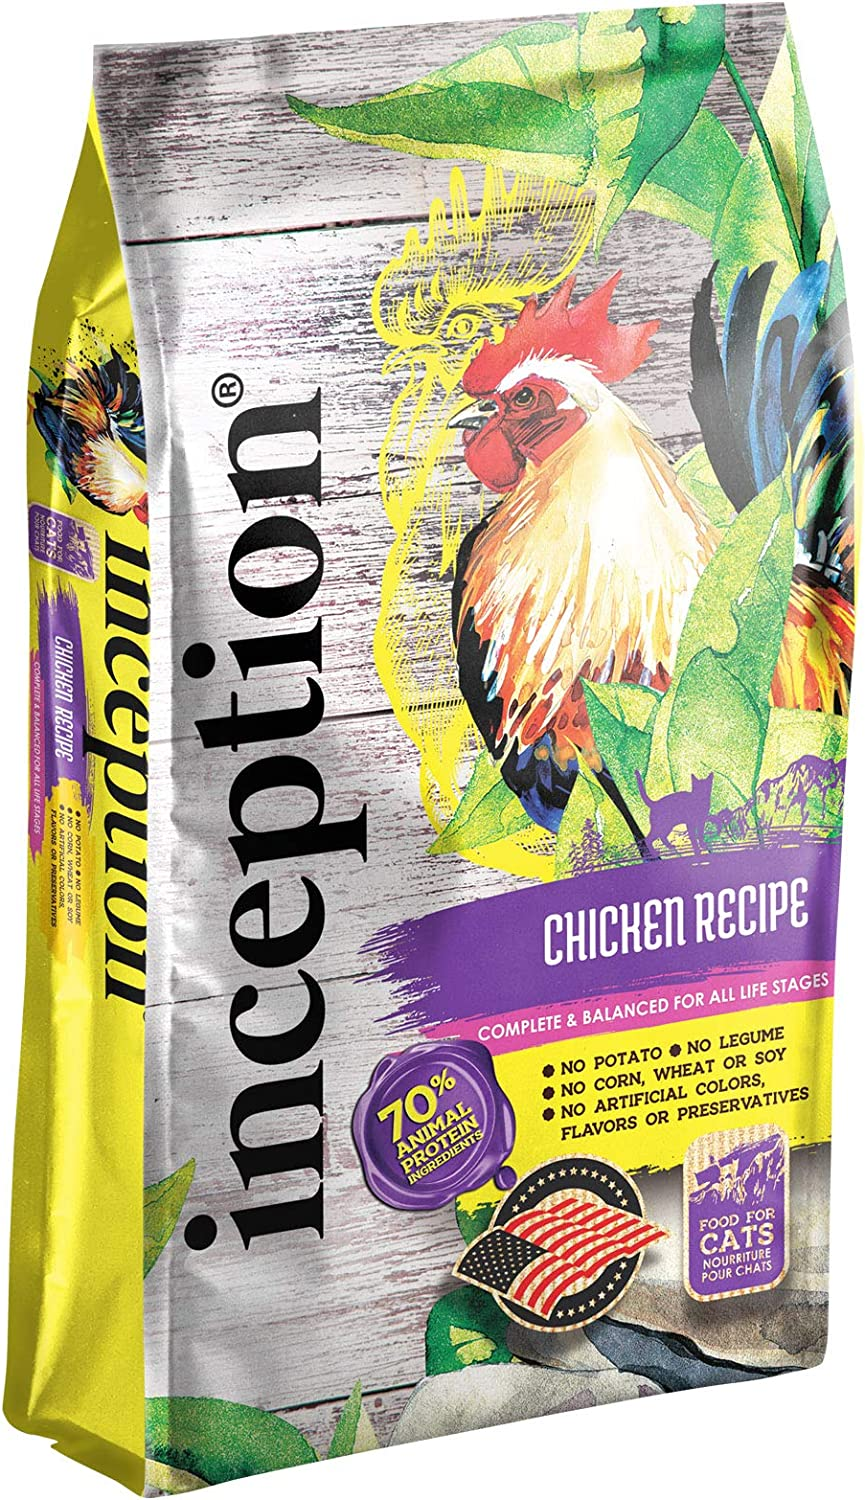 Inception Dry Cat Food Chicken Recipe – Complete and Balanced Cat Food – Meat First Legume Free Dry Cat Food – 4 lb. Bag